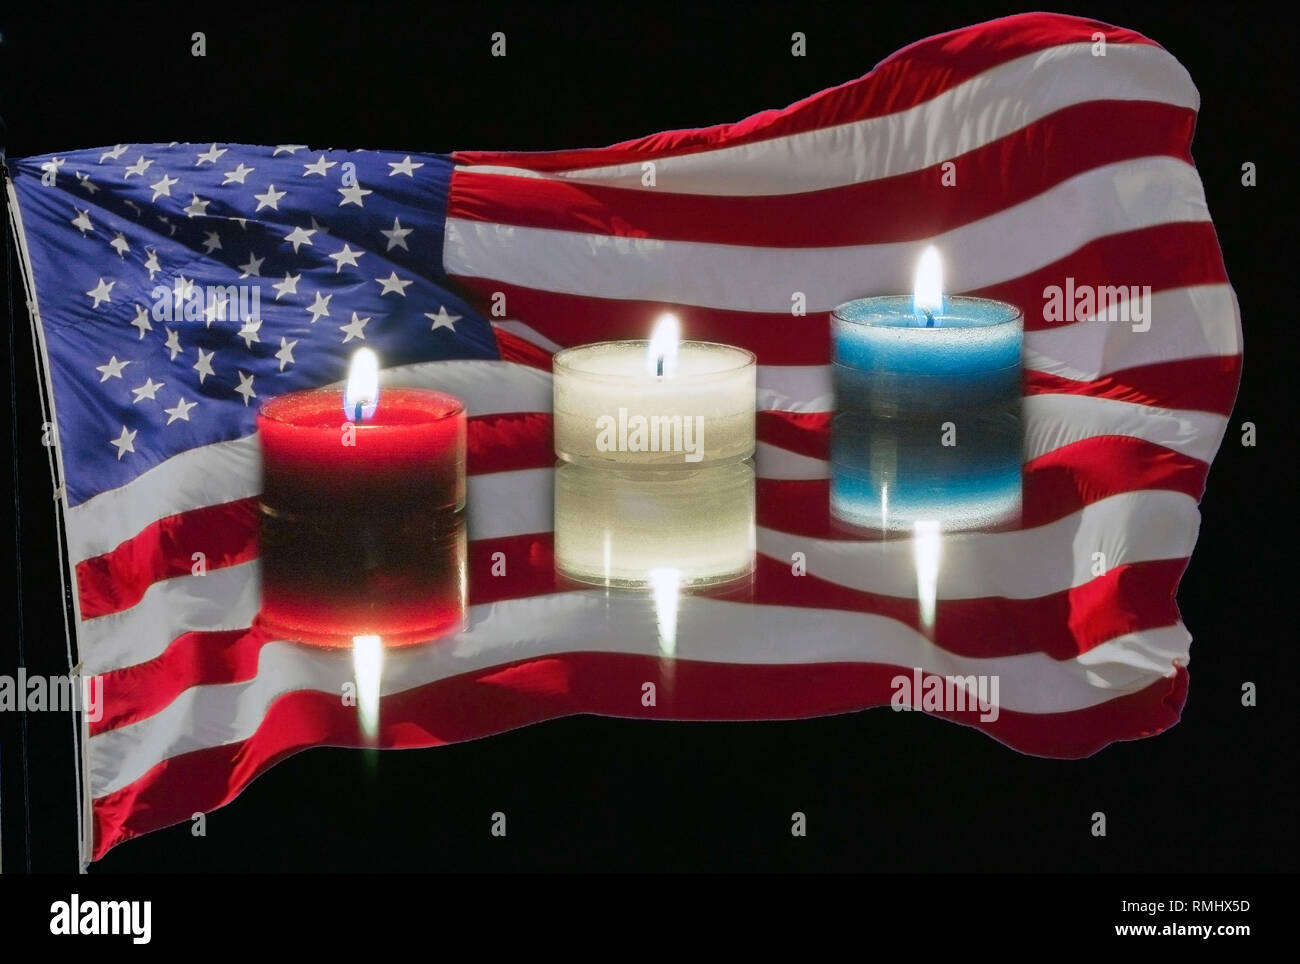 Red White And Blue Candles In Front Of An American Flag On A Black